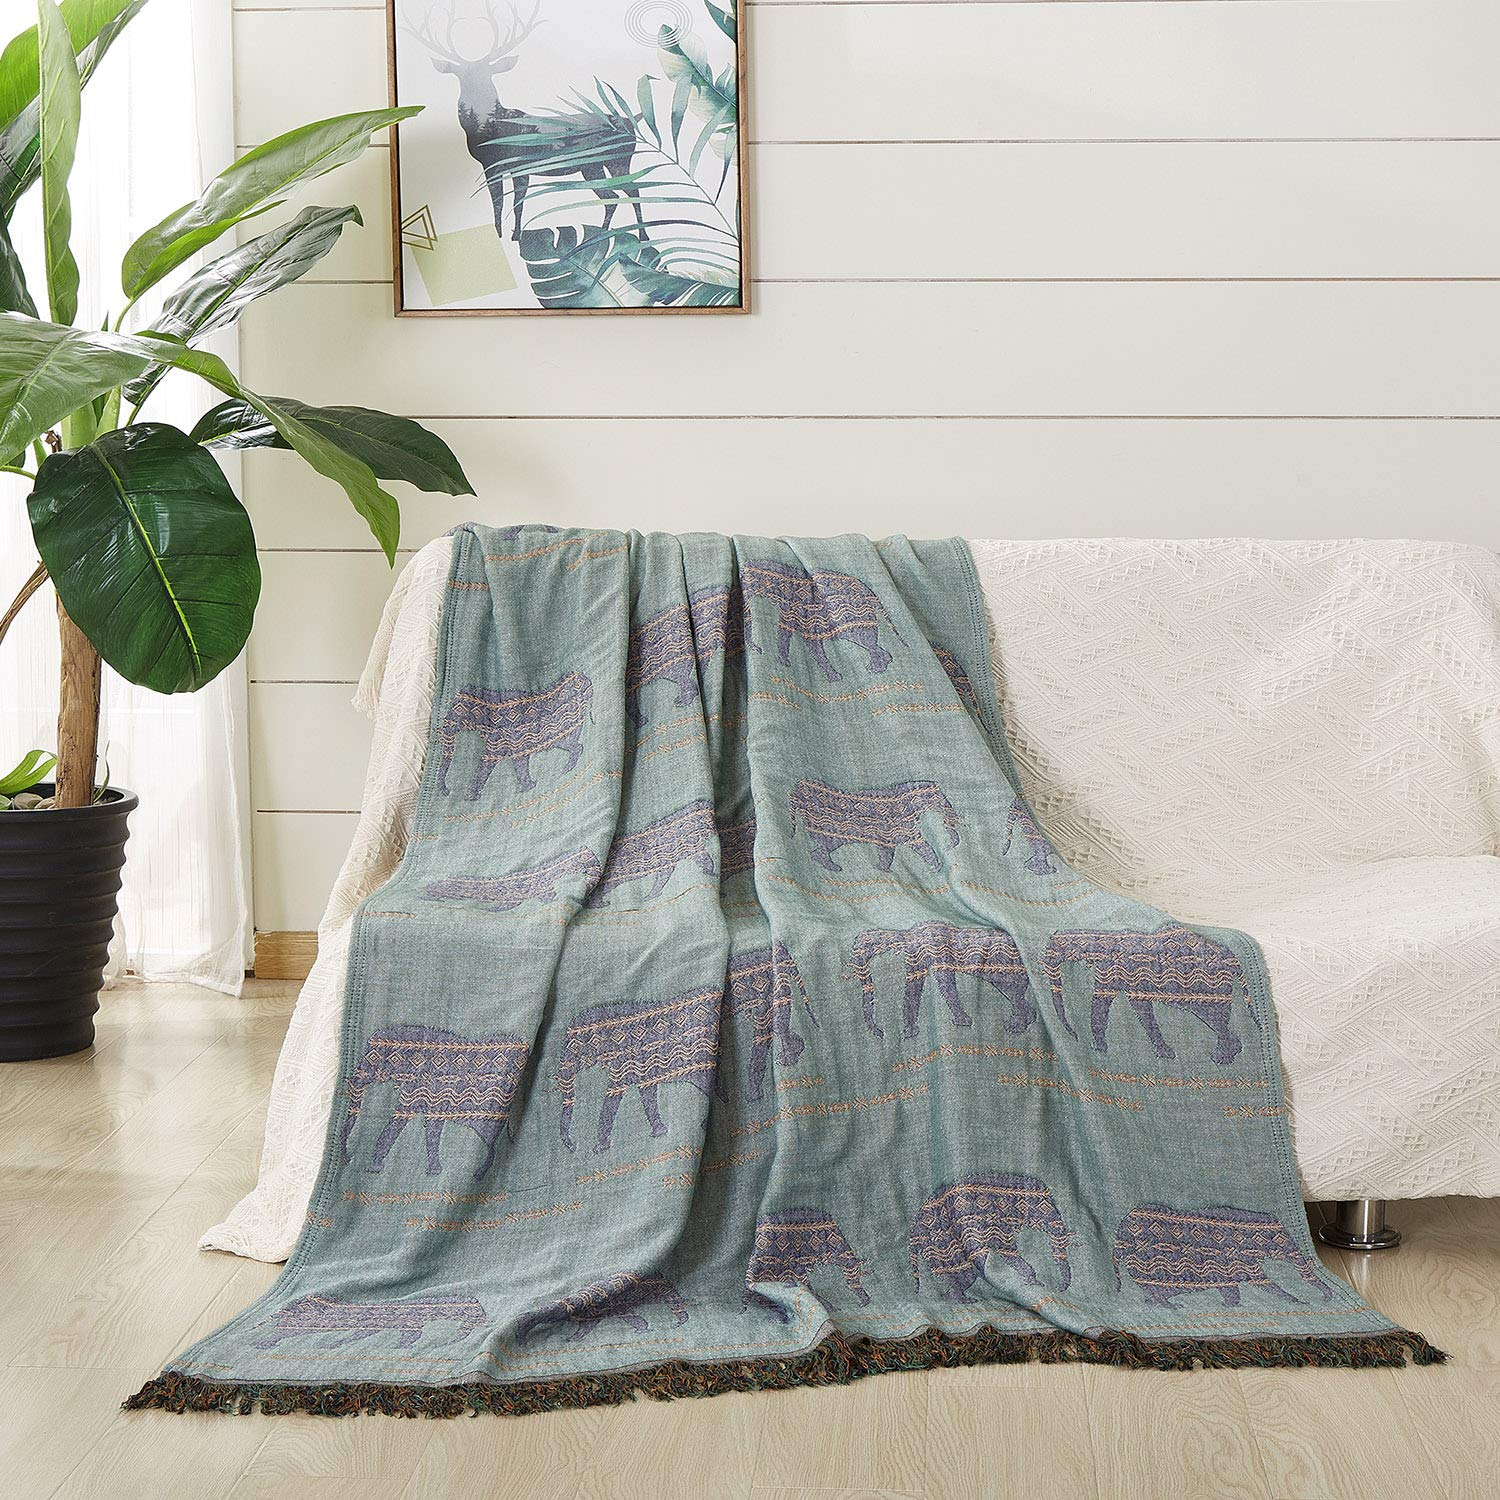 """JML Throw Blanket Soft Jacquard Organic Bamboo Cotton Throw Blanket with Tassels Couch Blanket and Throw Shawls and Wraps Cotton Blankets for Bed Sofa Chair Travel Lap Adult,50"""" X 60""""-Elephant Green"""